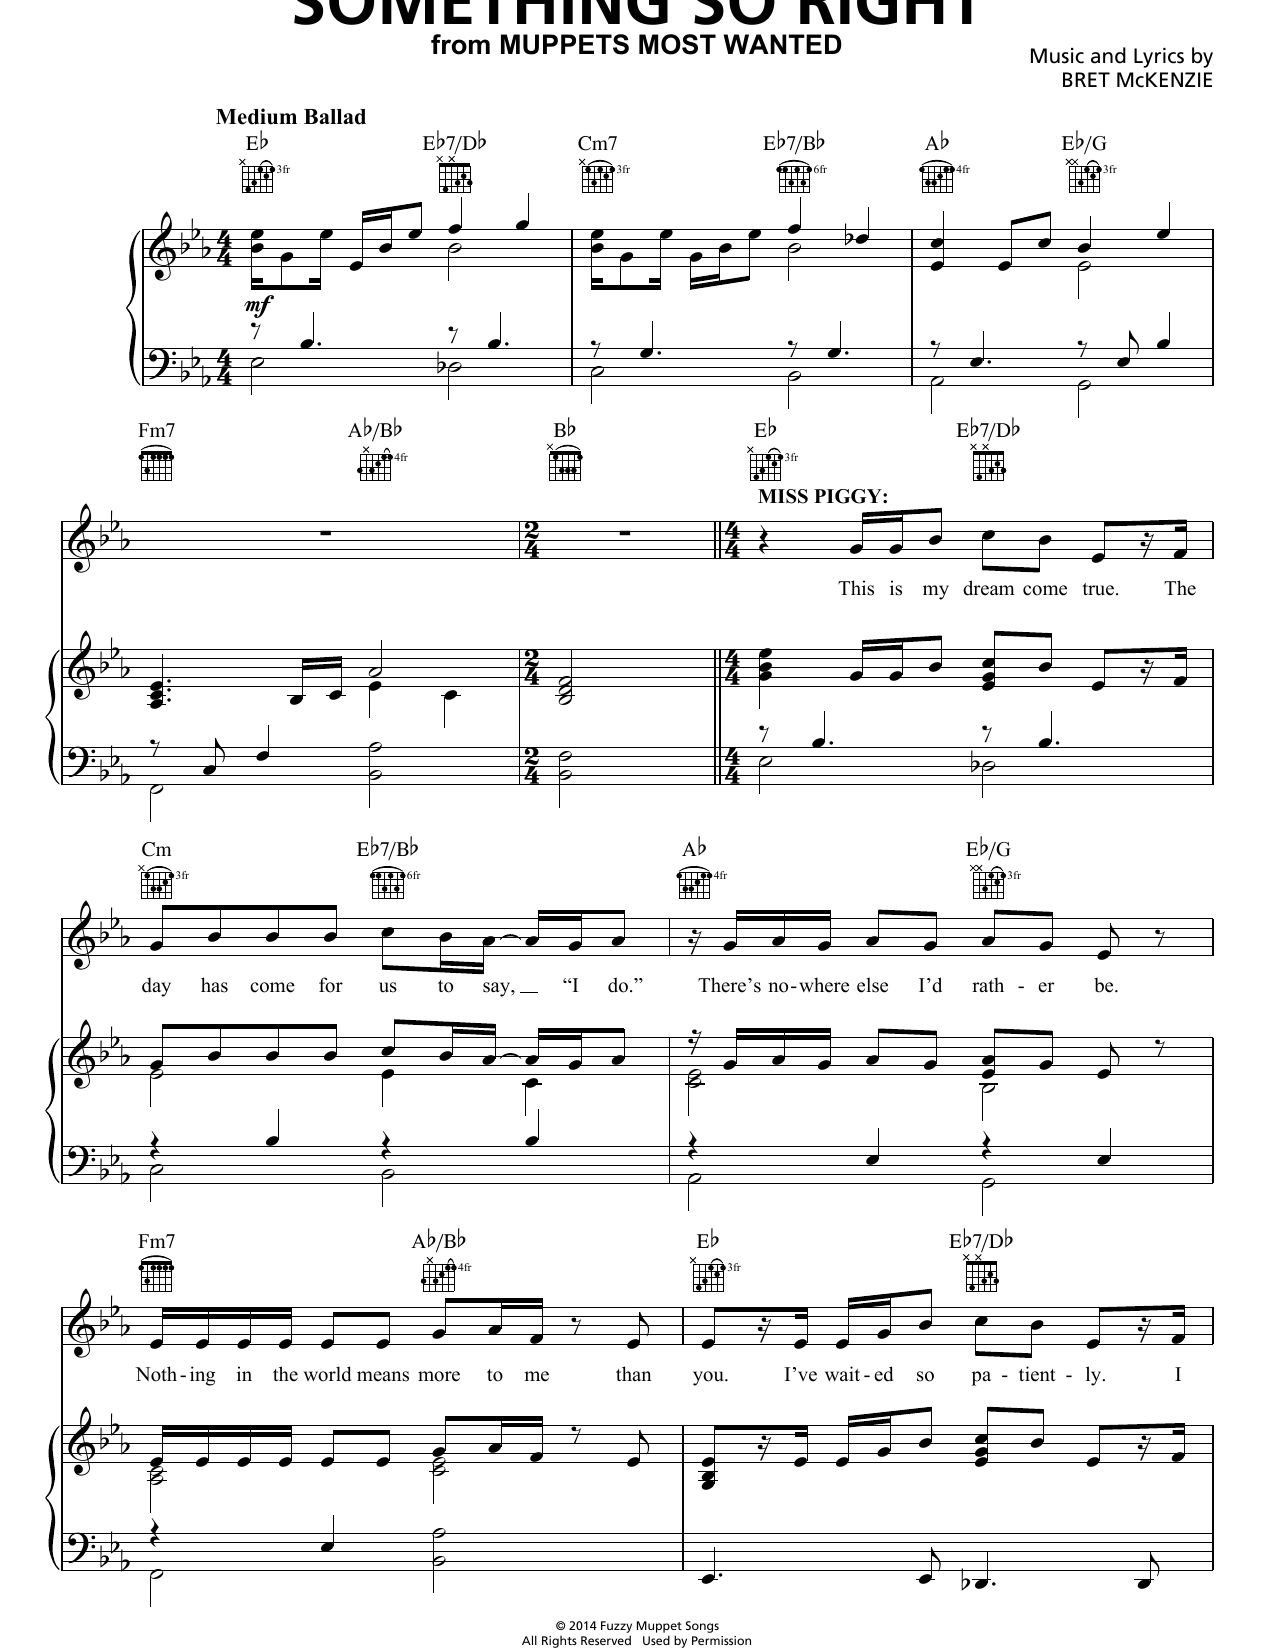 Bret McKenzie Something So Right sheet music notes and chords. Download Printable PDF.